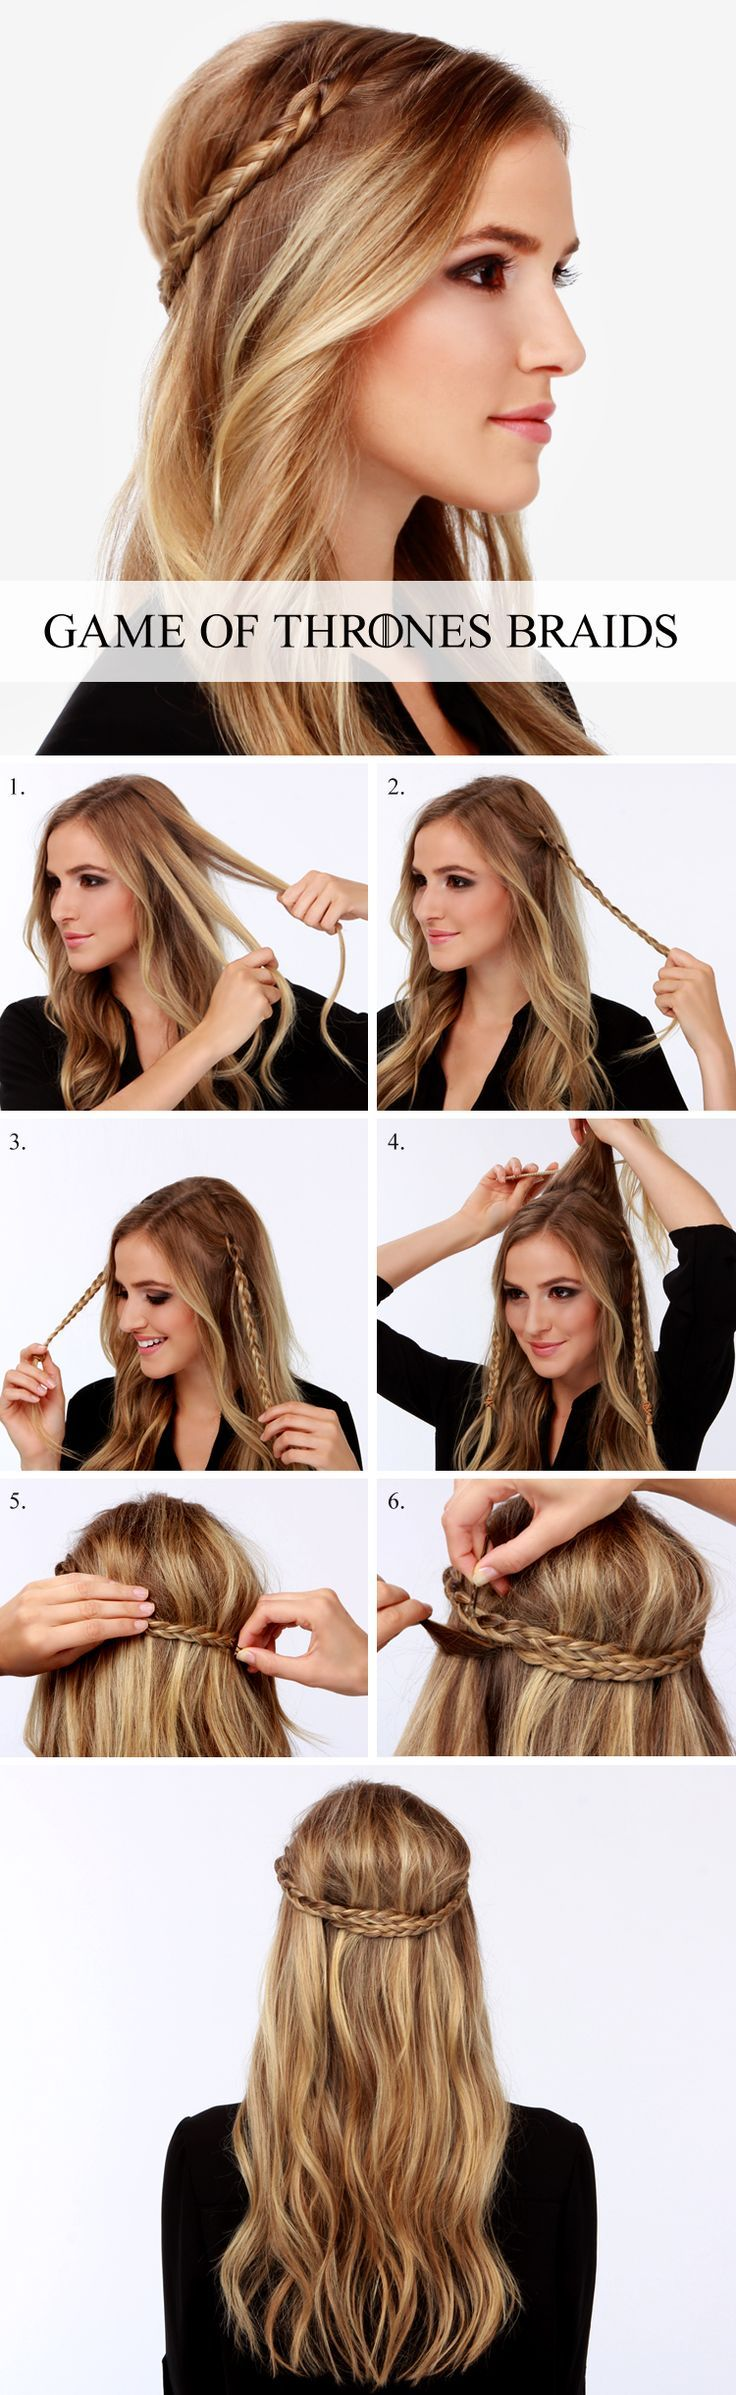 Game of Thrones Braid Tutorial #Hair | Lulus | Nobody wears braids quite like the lovely ladies of Game of Thrones. If you're planning on celebrating Halloween as the daring Daenerys this year, we've got the perfect braided GOT hairdo for you! And the best part? You don't have to stop at just one braid! Play with the look by adding as many as you'd like!